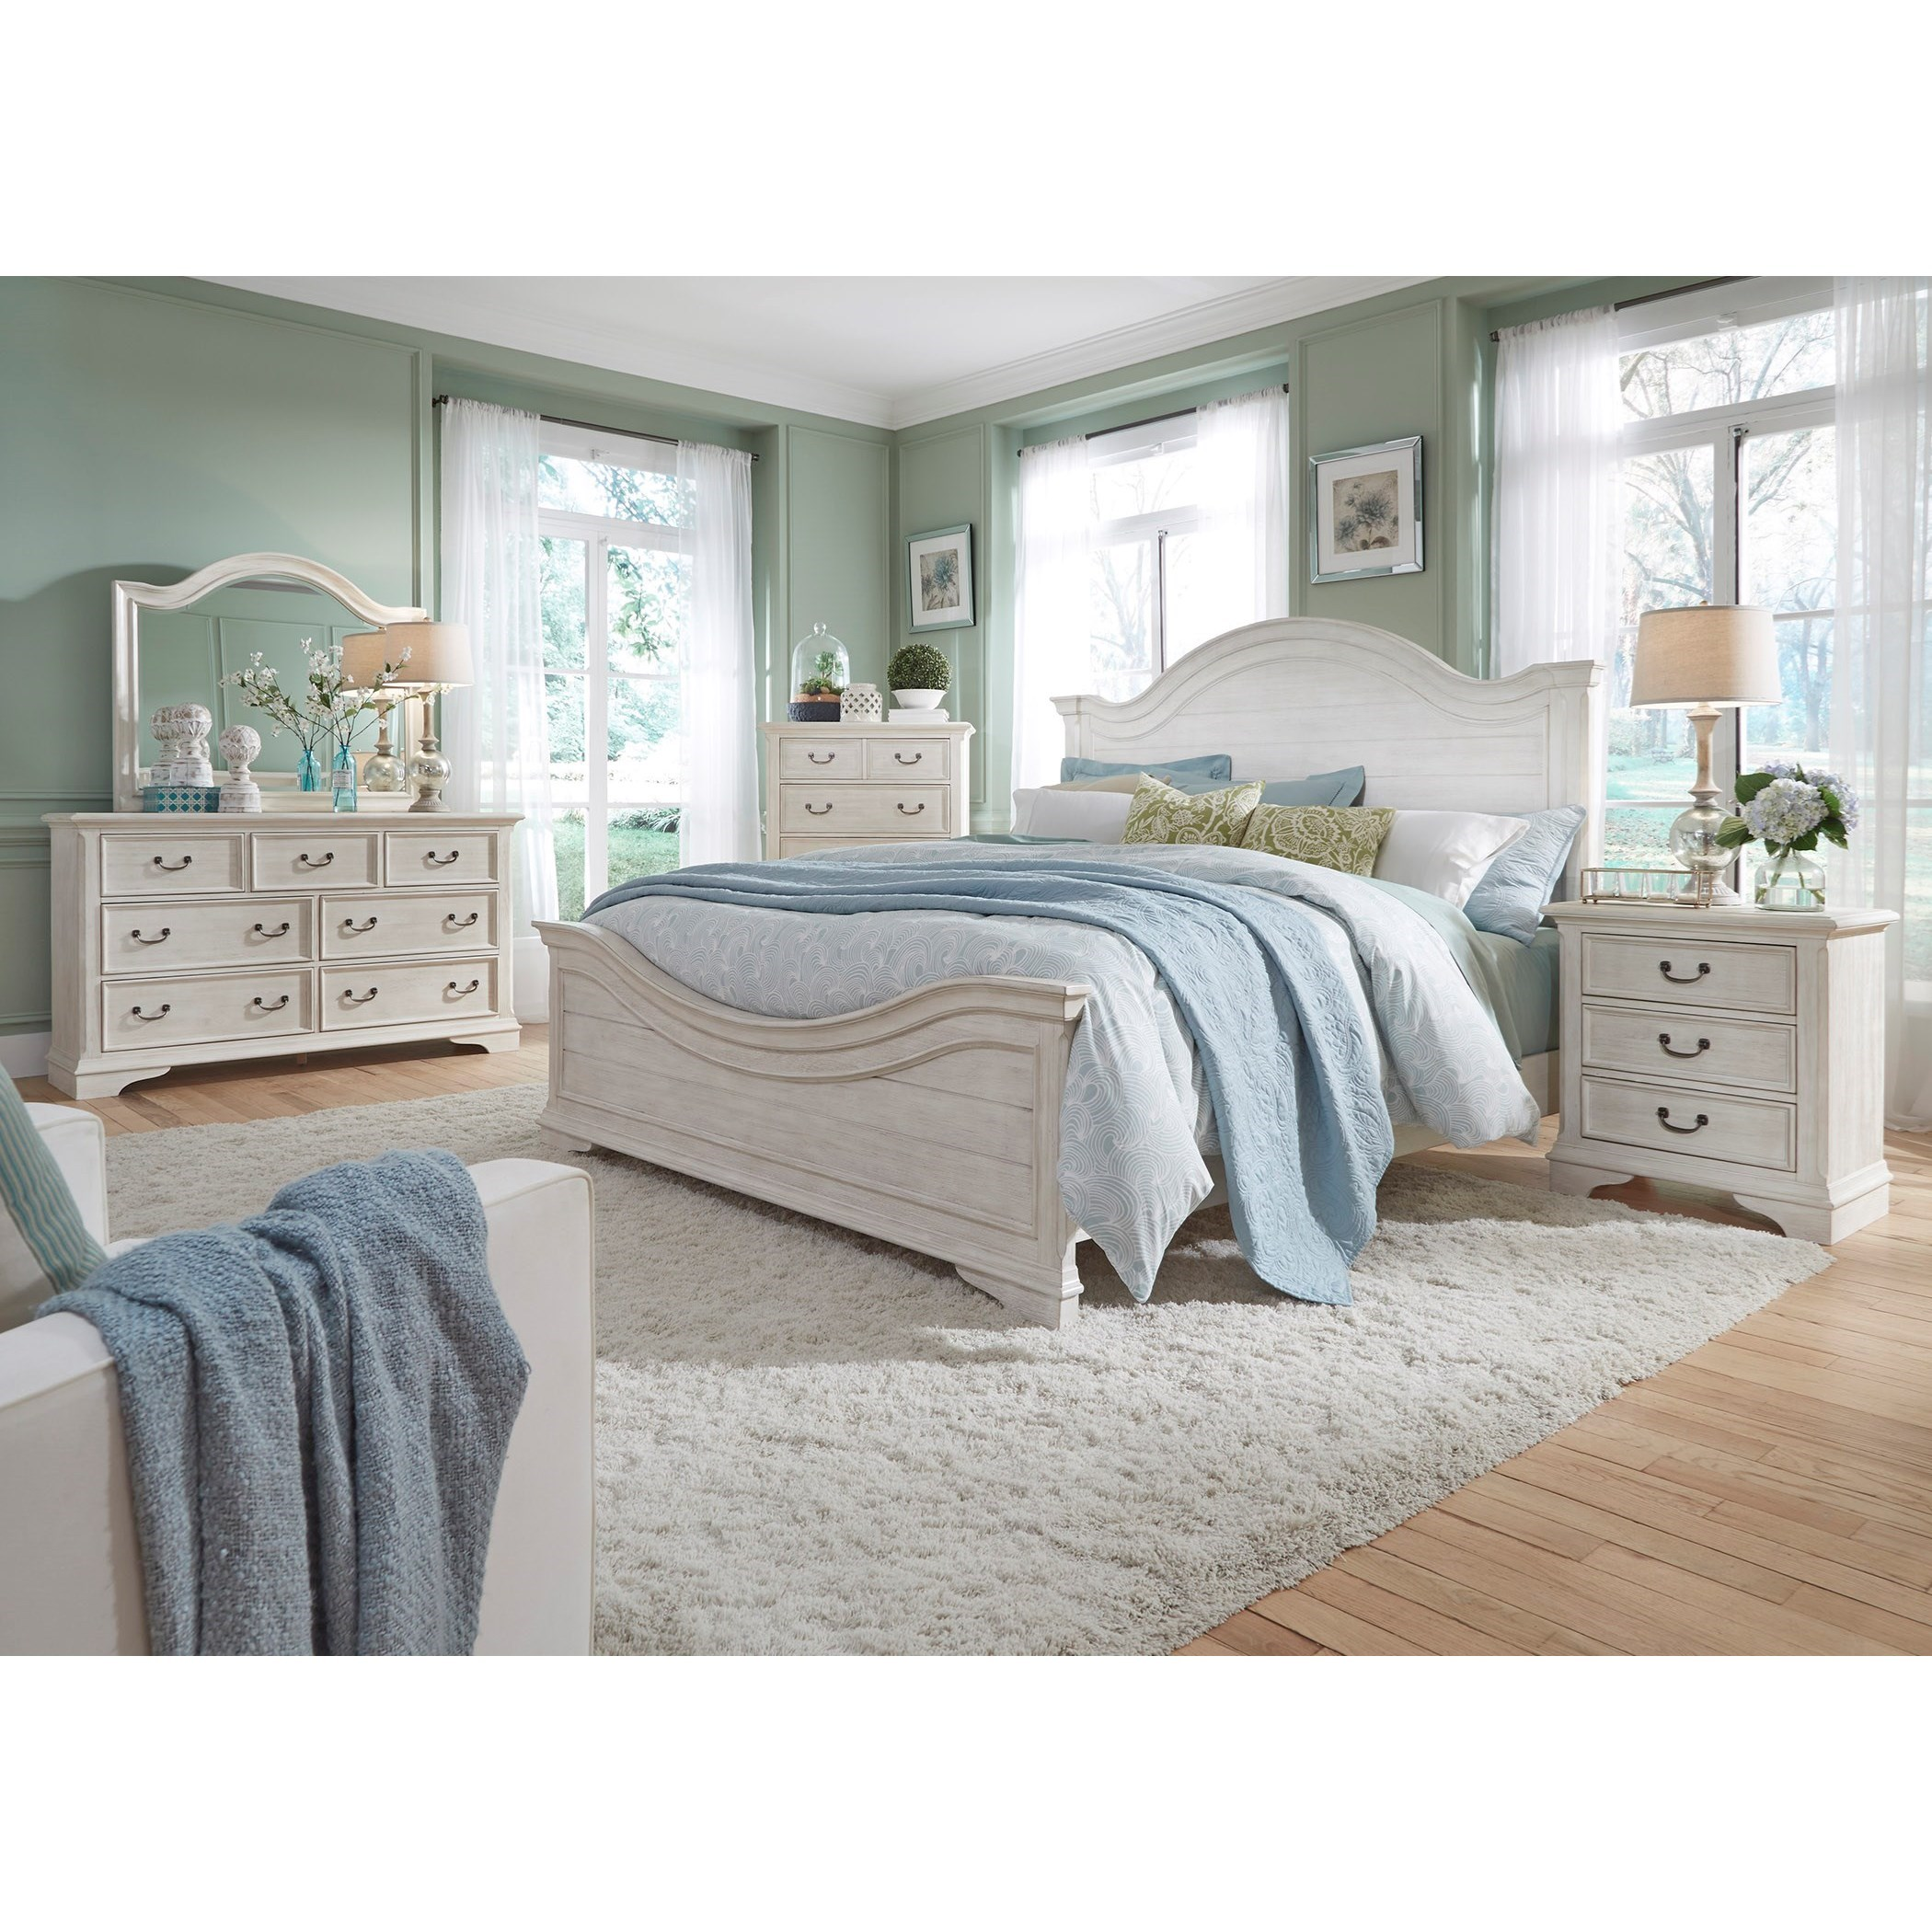 Bayside Bedroom King Bedroom Group by Liberty Furniture at Northeast Factory Direct